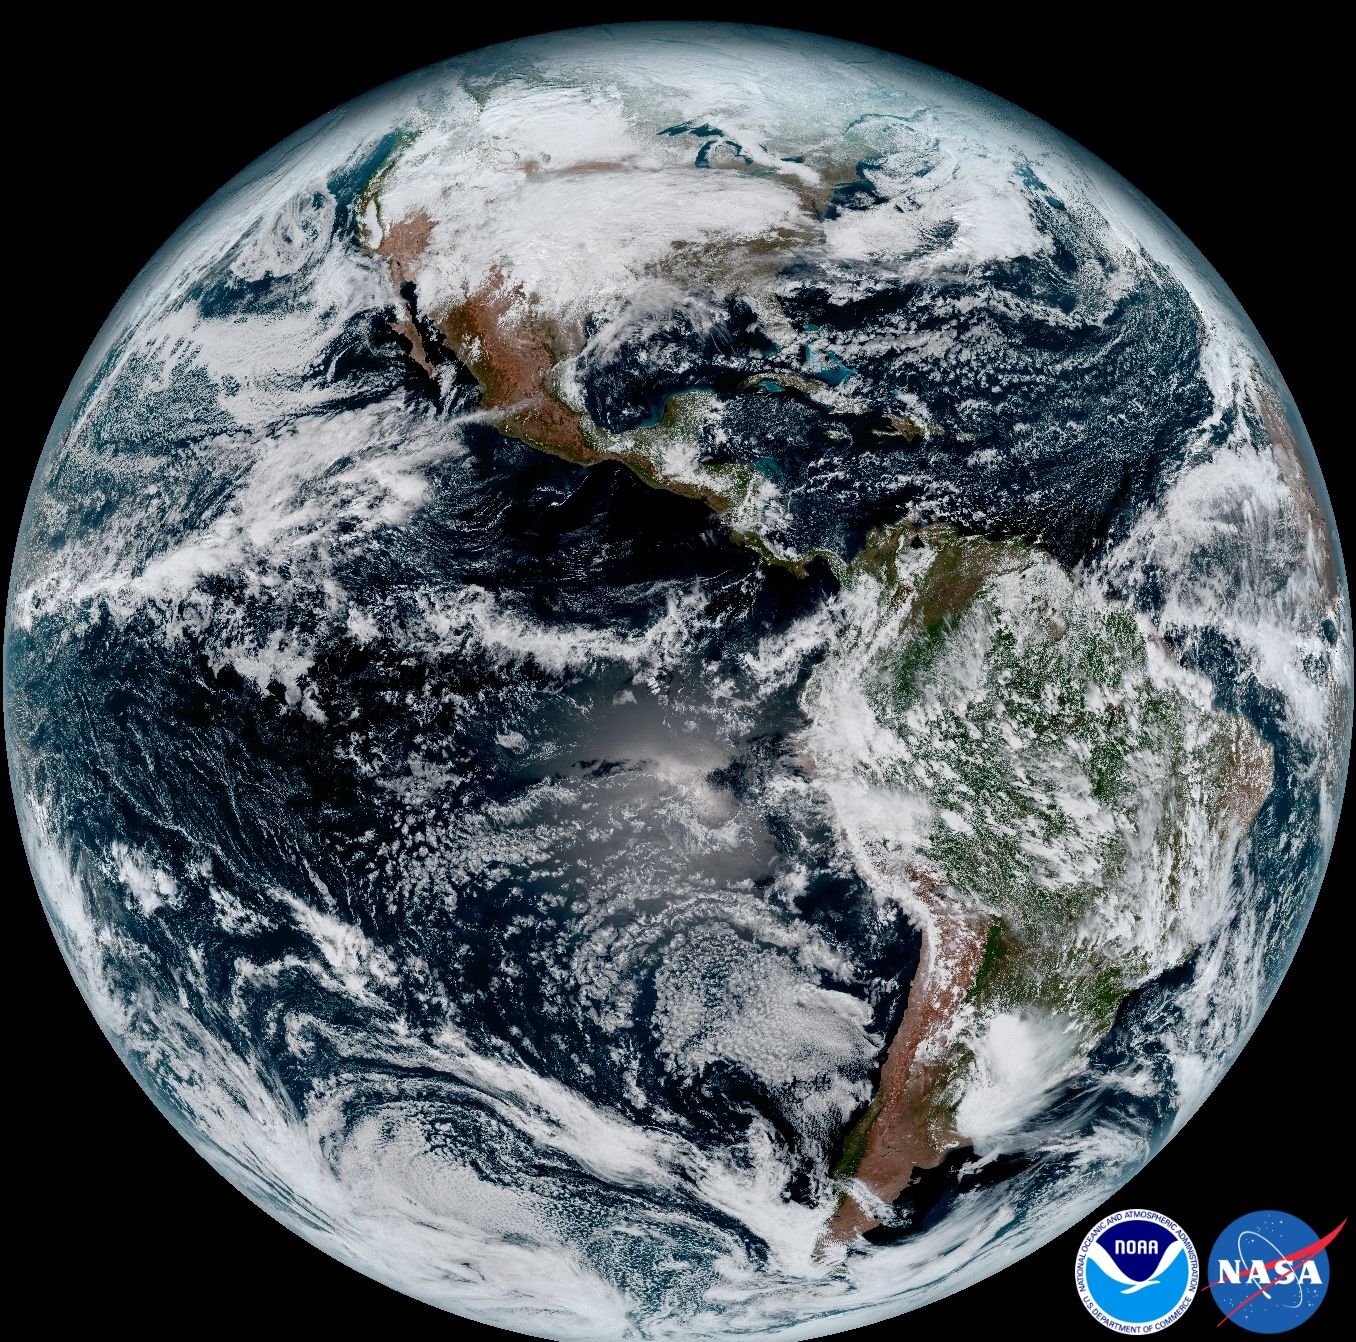 This composite color full-disk visible image was captured at 1:07pm EST on January 15, 2017 and created using several of the 16 spectral channels available on the ABI.